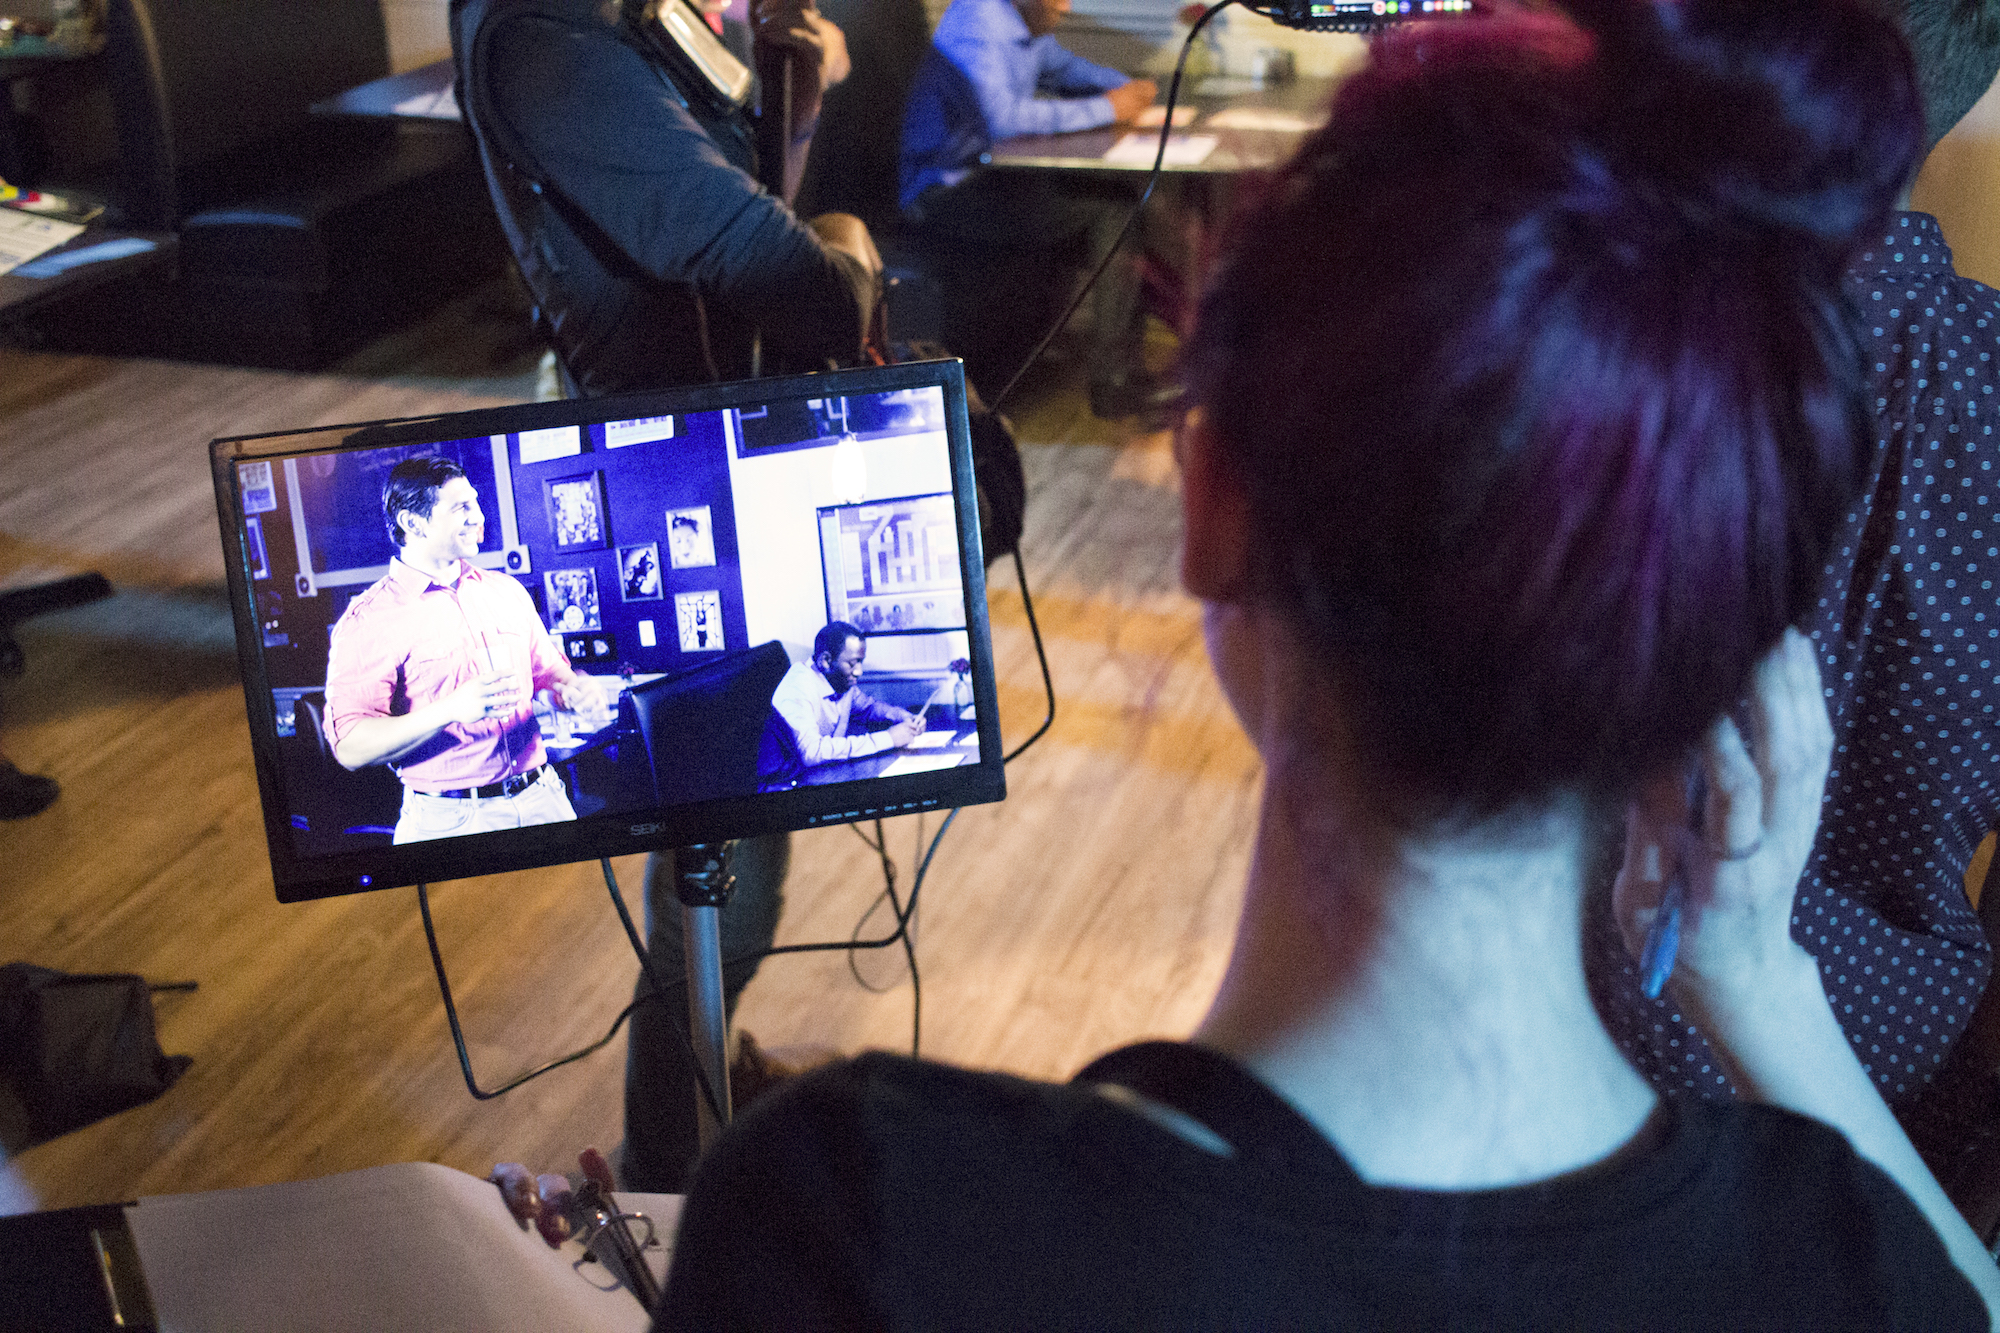 Writer, Producer/Director Geena Matuson watches performance by Casey William Hines on monitor in her production of 'Fauxmercials' bar ads, September 2016.